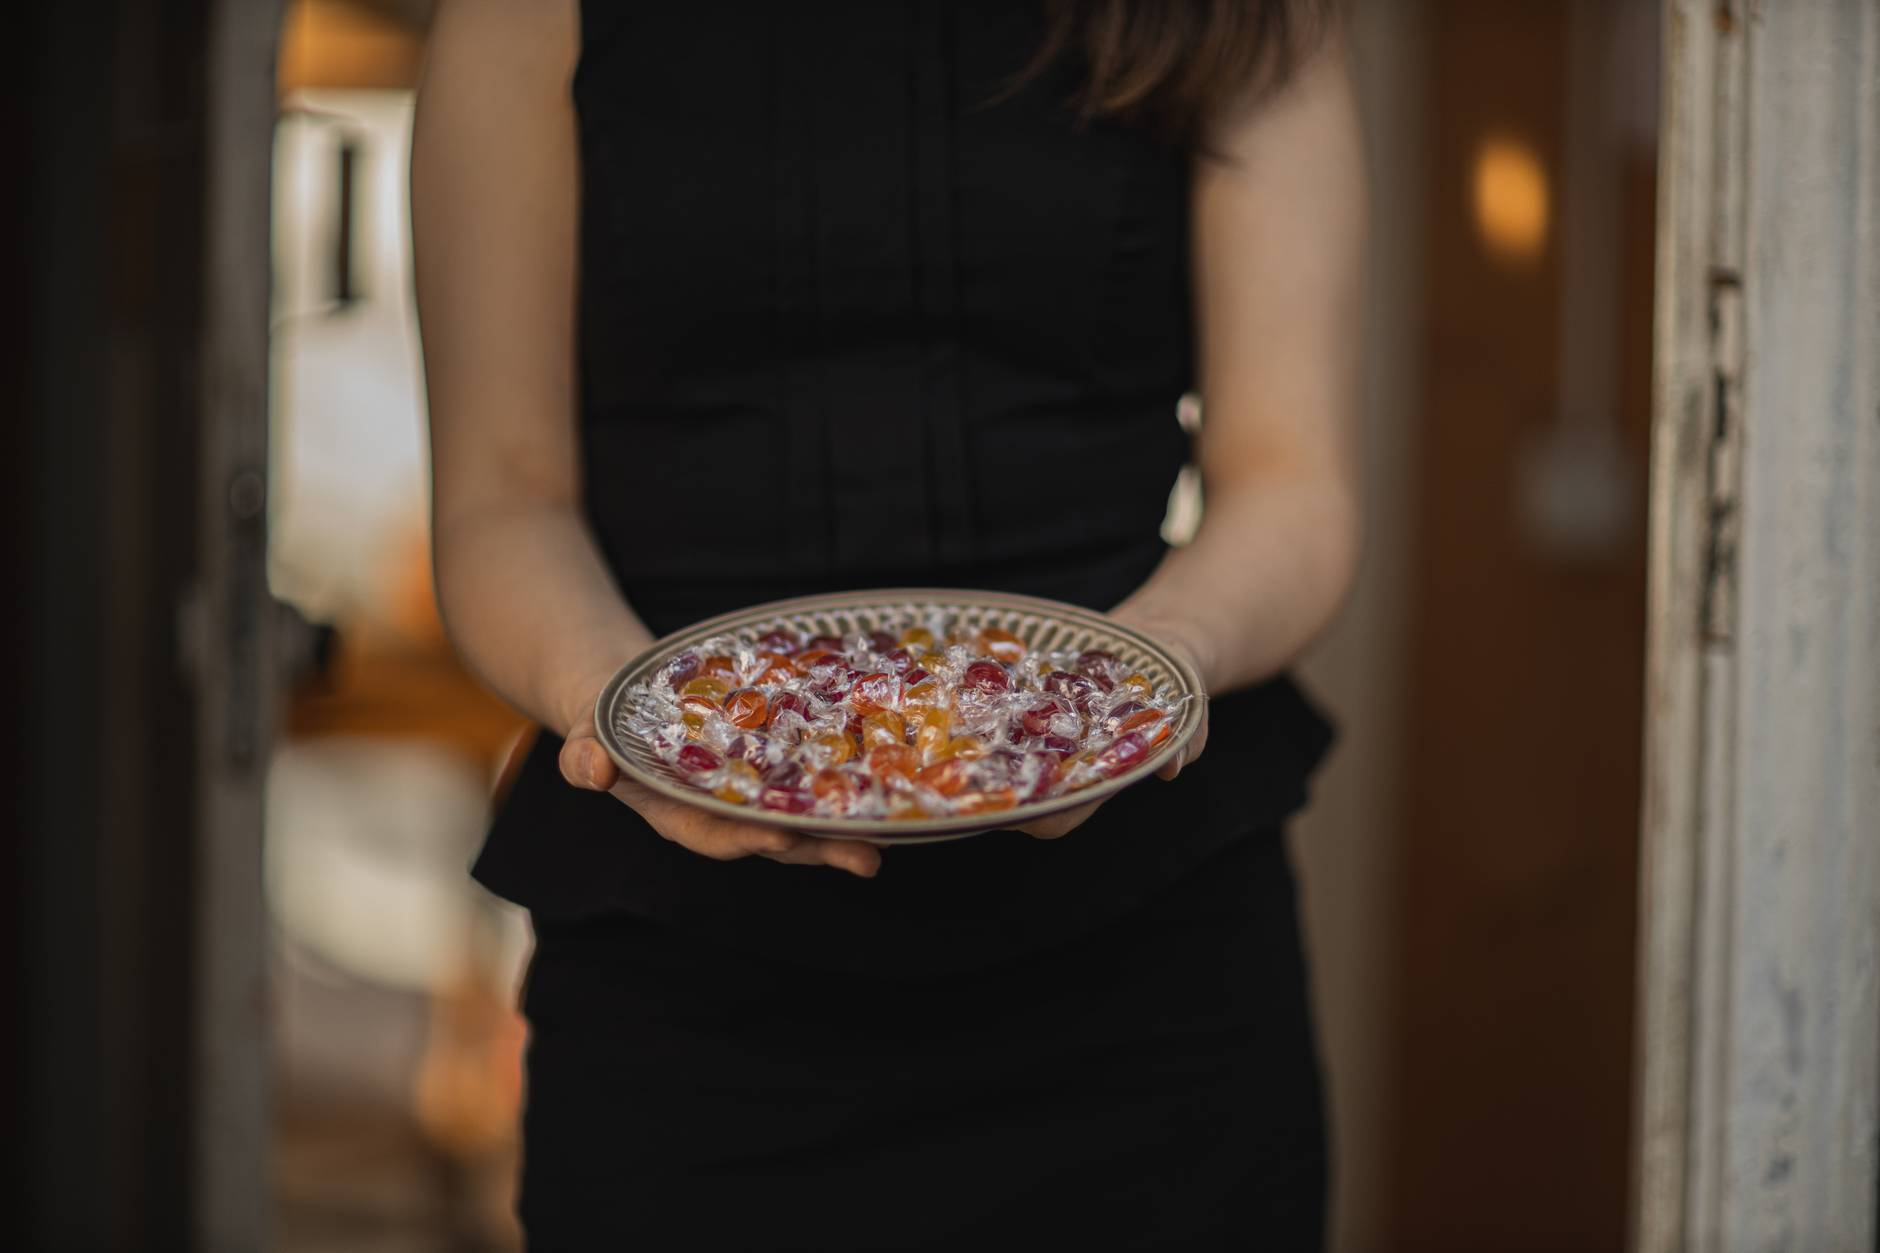 woman in black tank top holding plate with candies